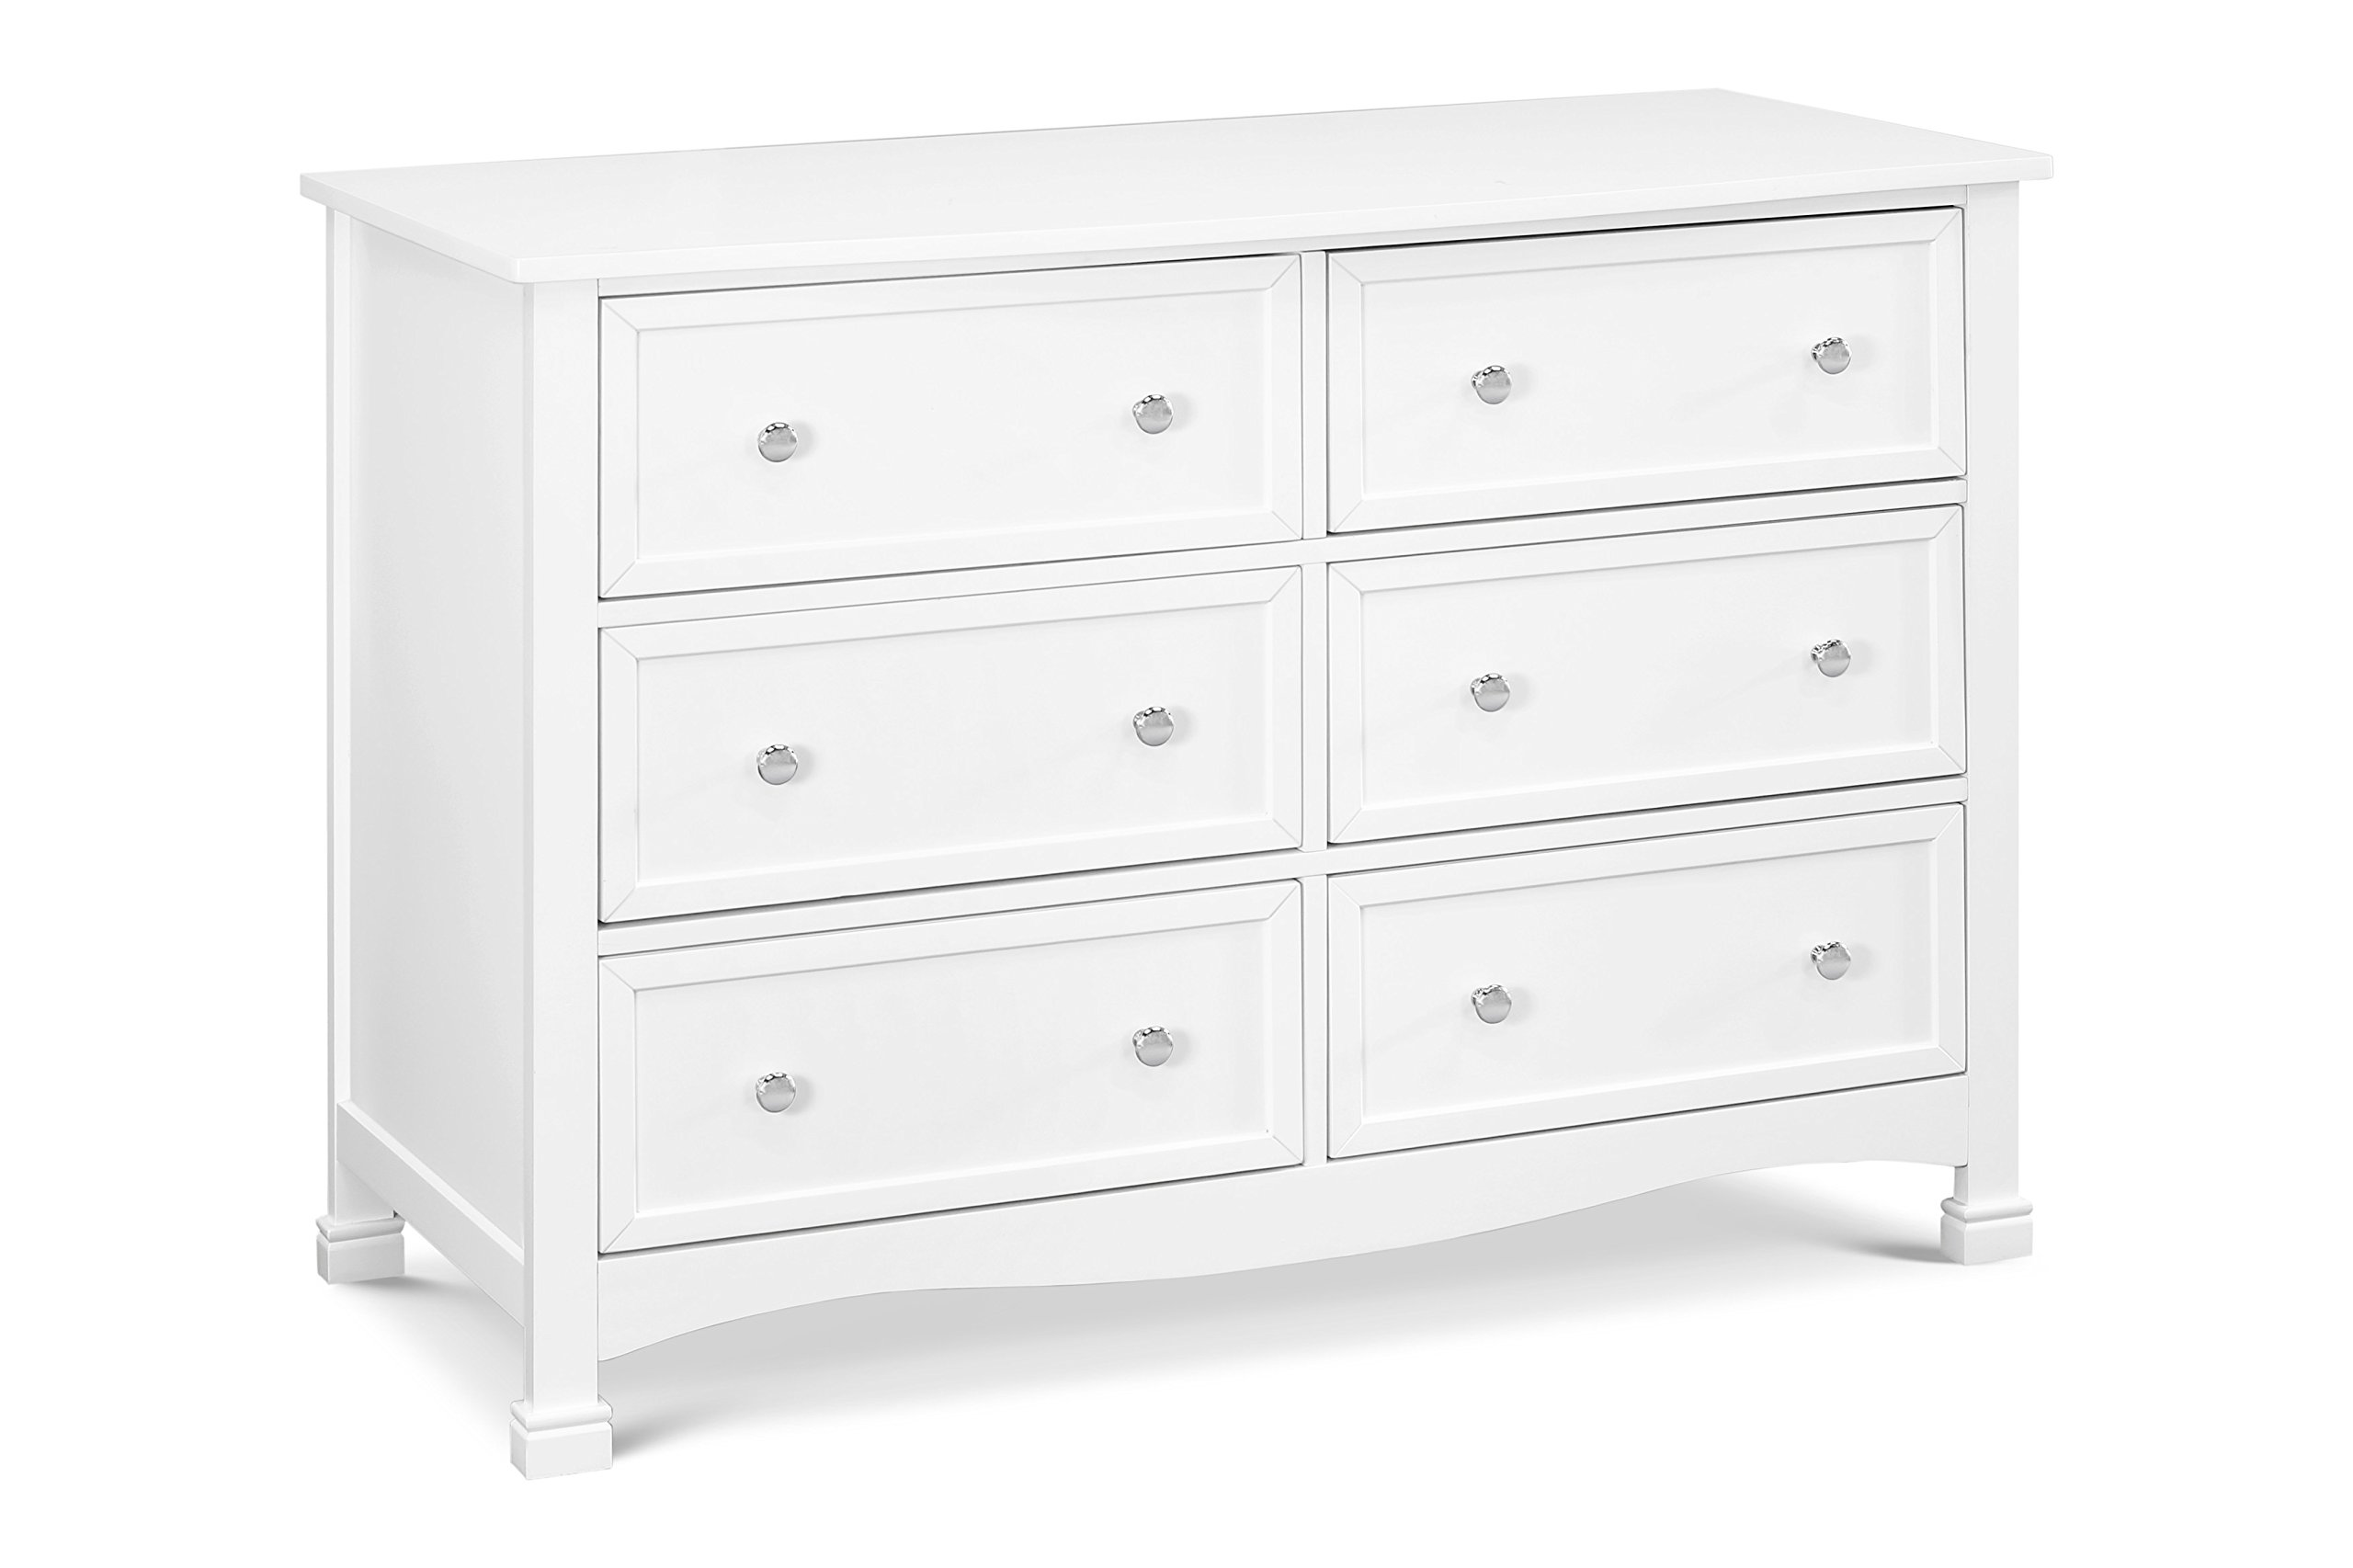 DaVinci Kalani 6 Drawer Double Wide Dresser, White by DaVinci